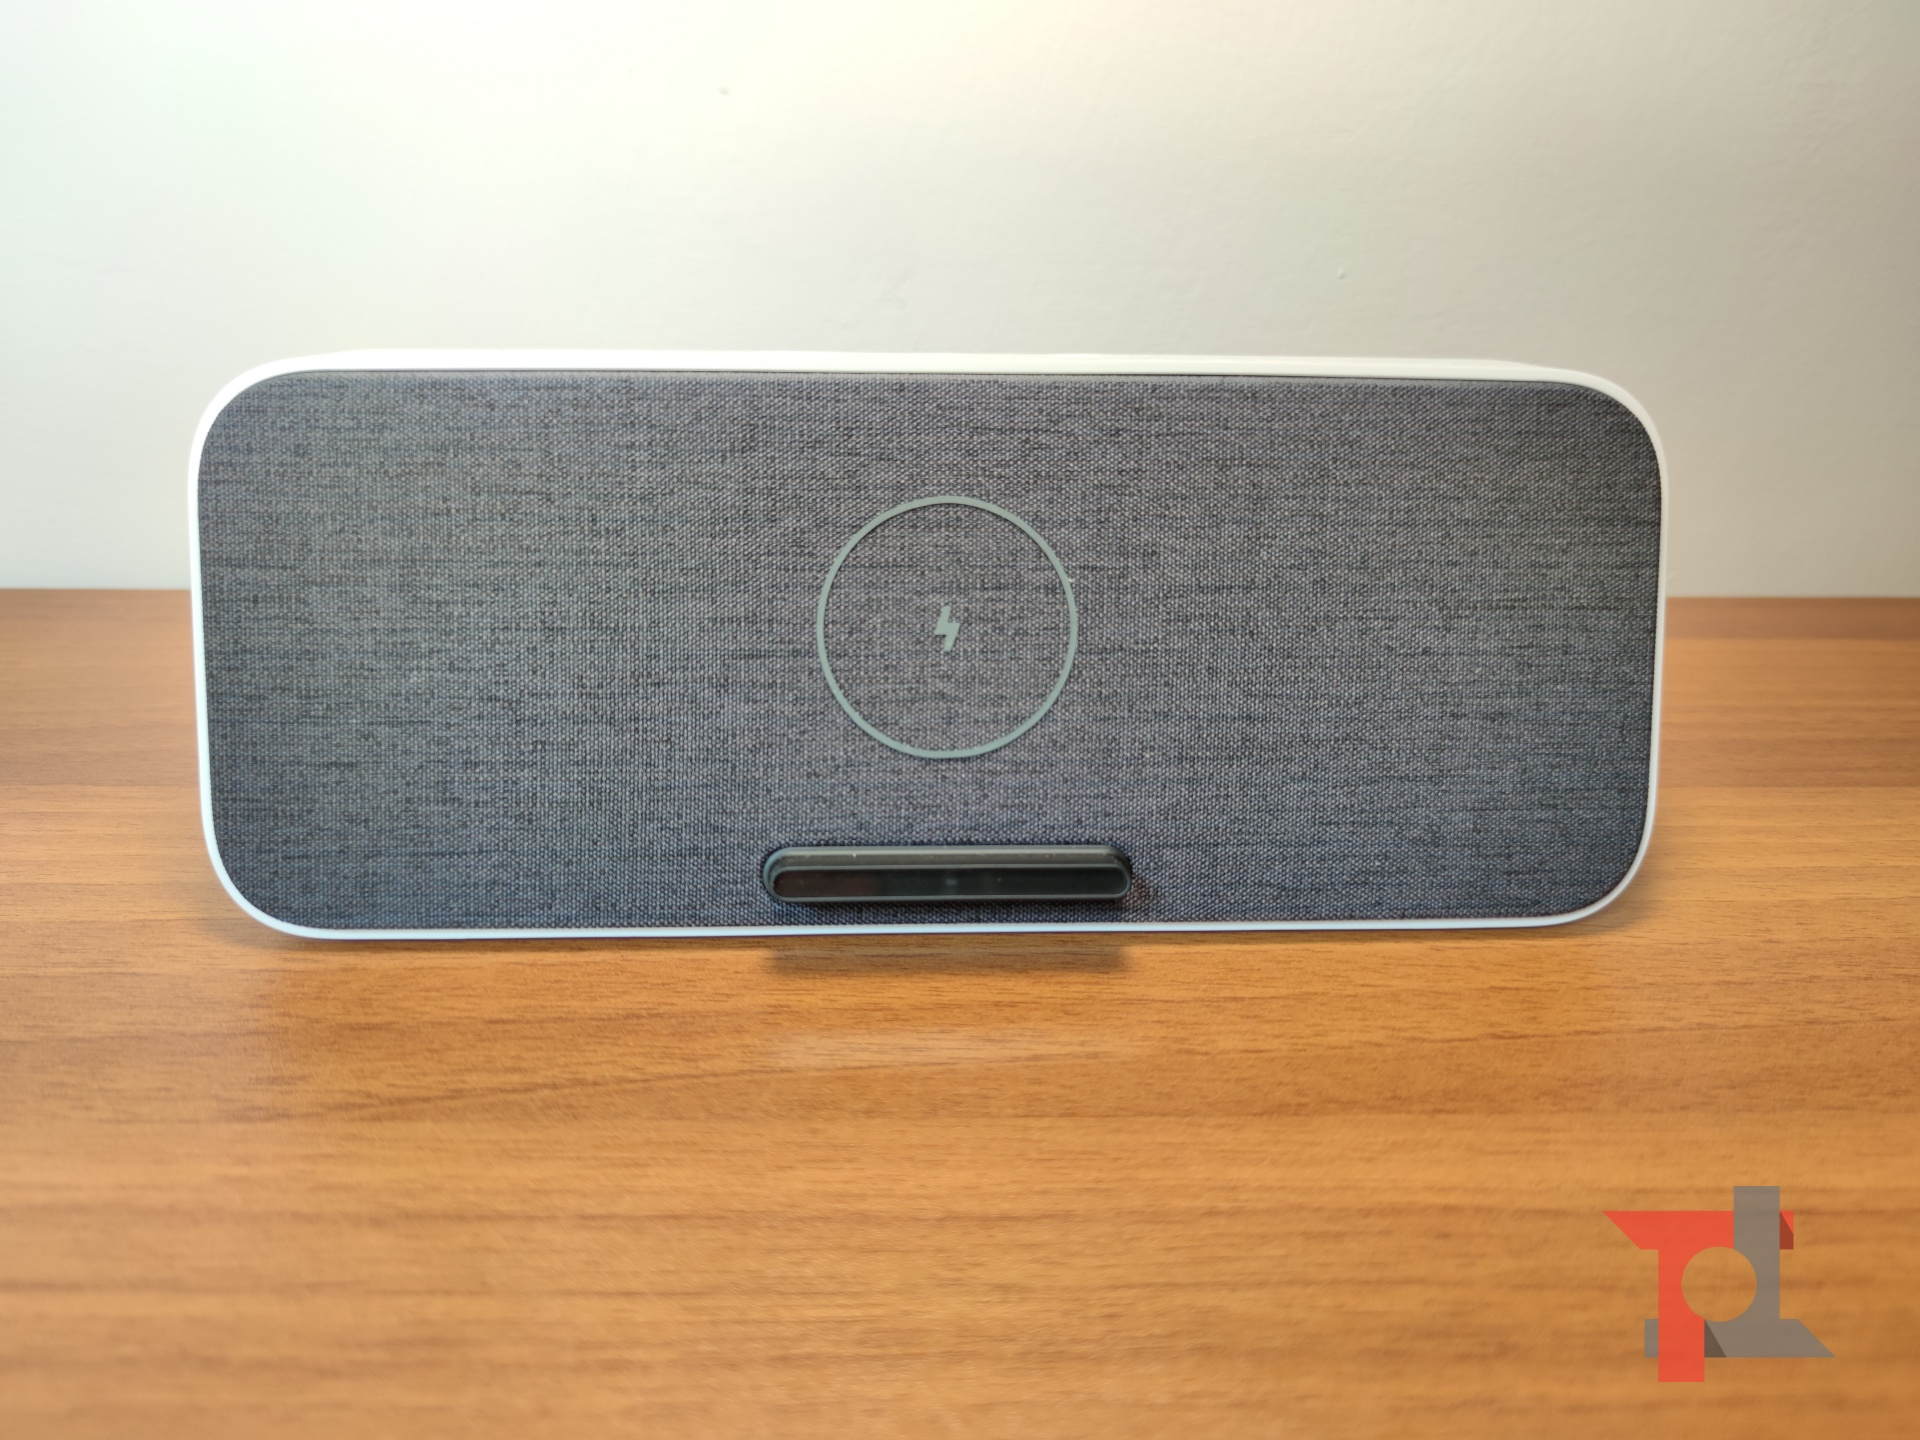 La nostra prova di Xiaomi Bluetooth speaker con ricarica wireless a 30 W 1